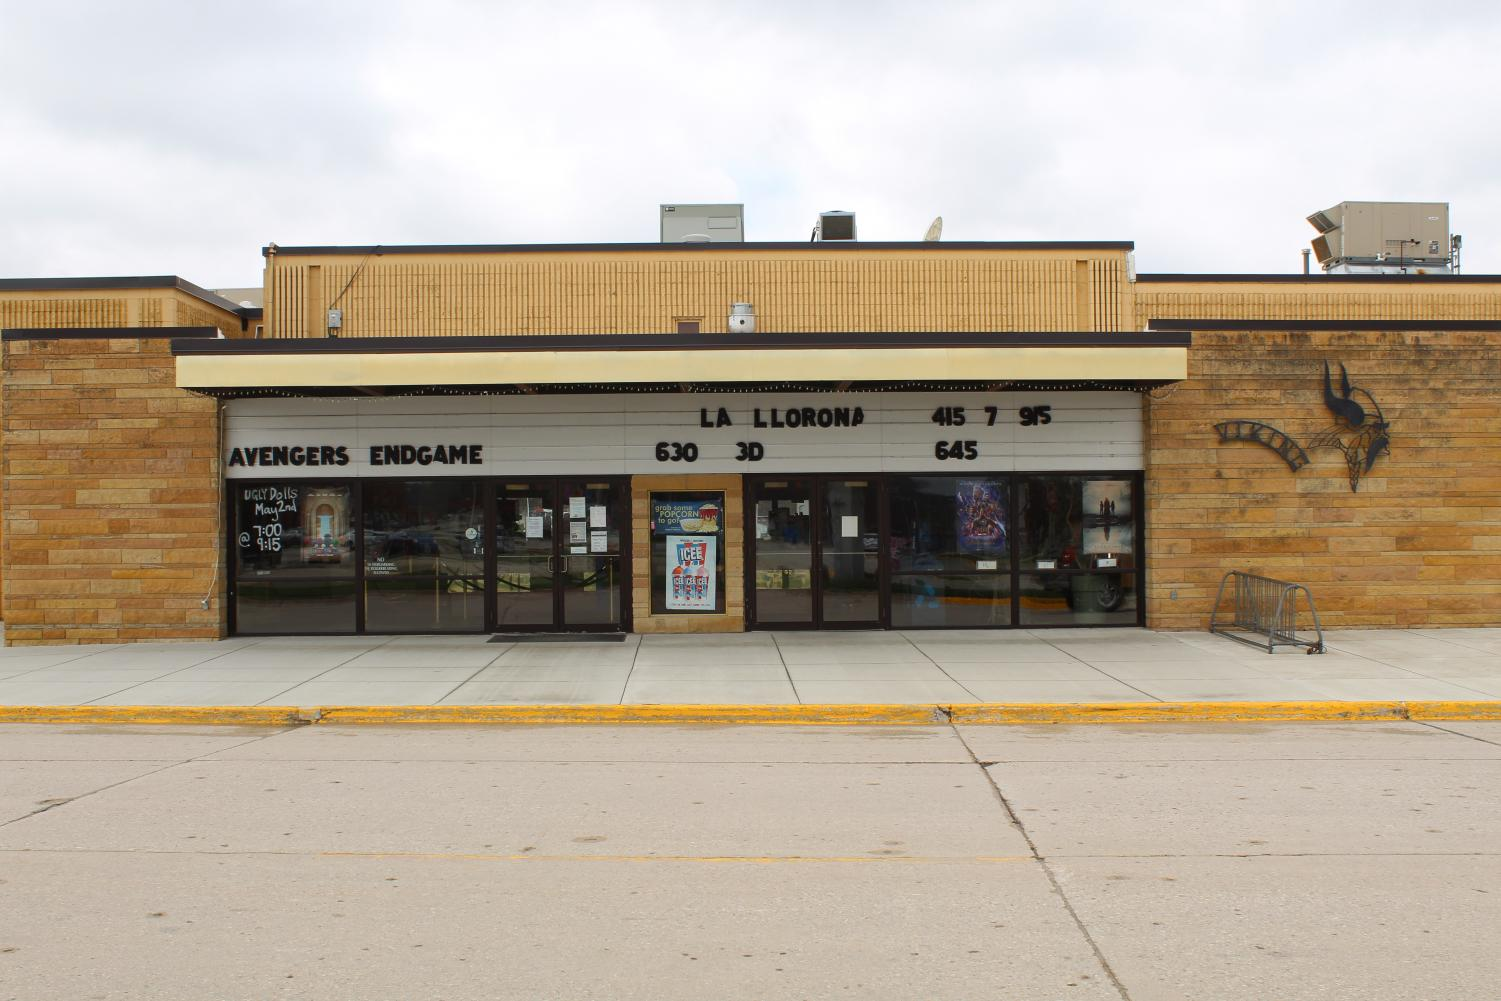 Fridley Theatres Viking 3 is located in downtown Decorah.